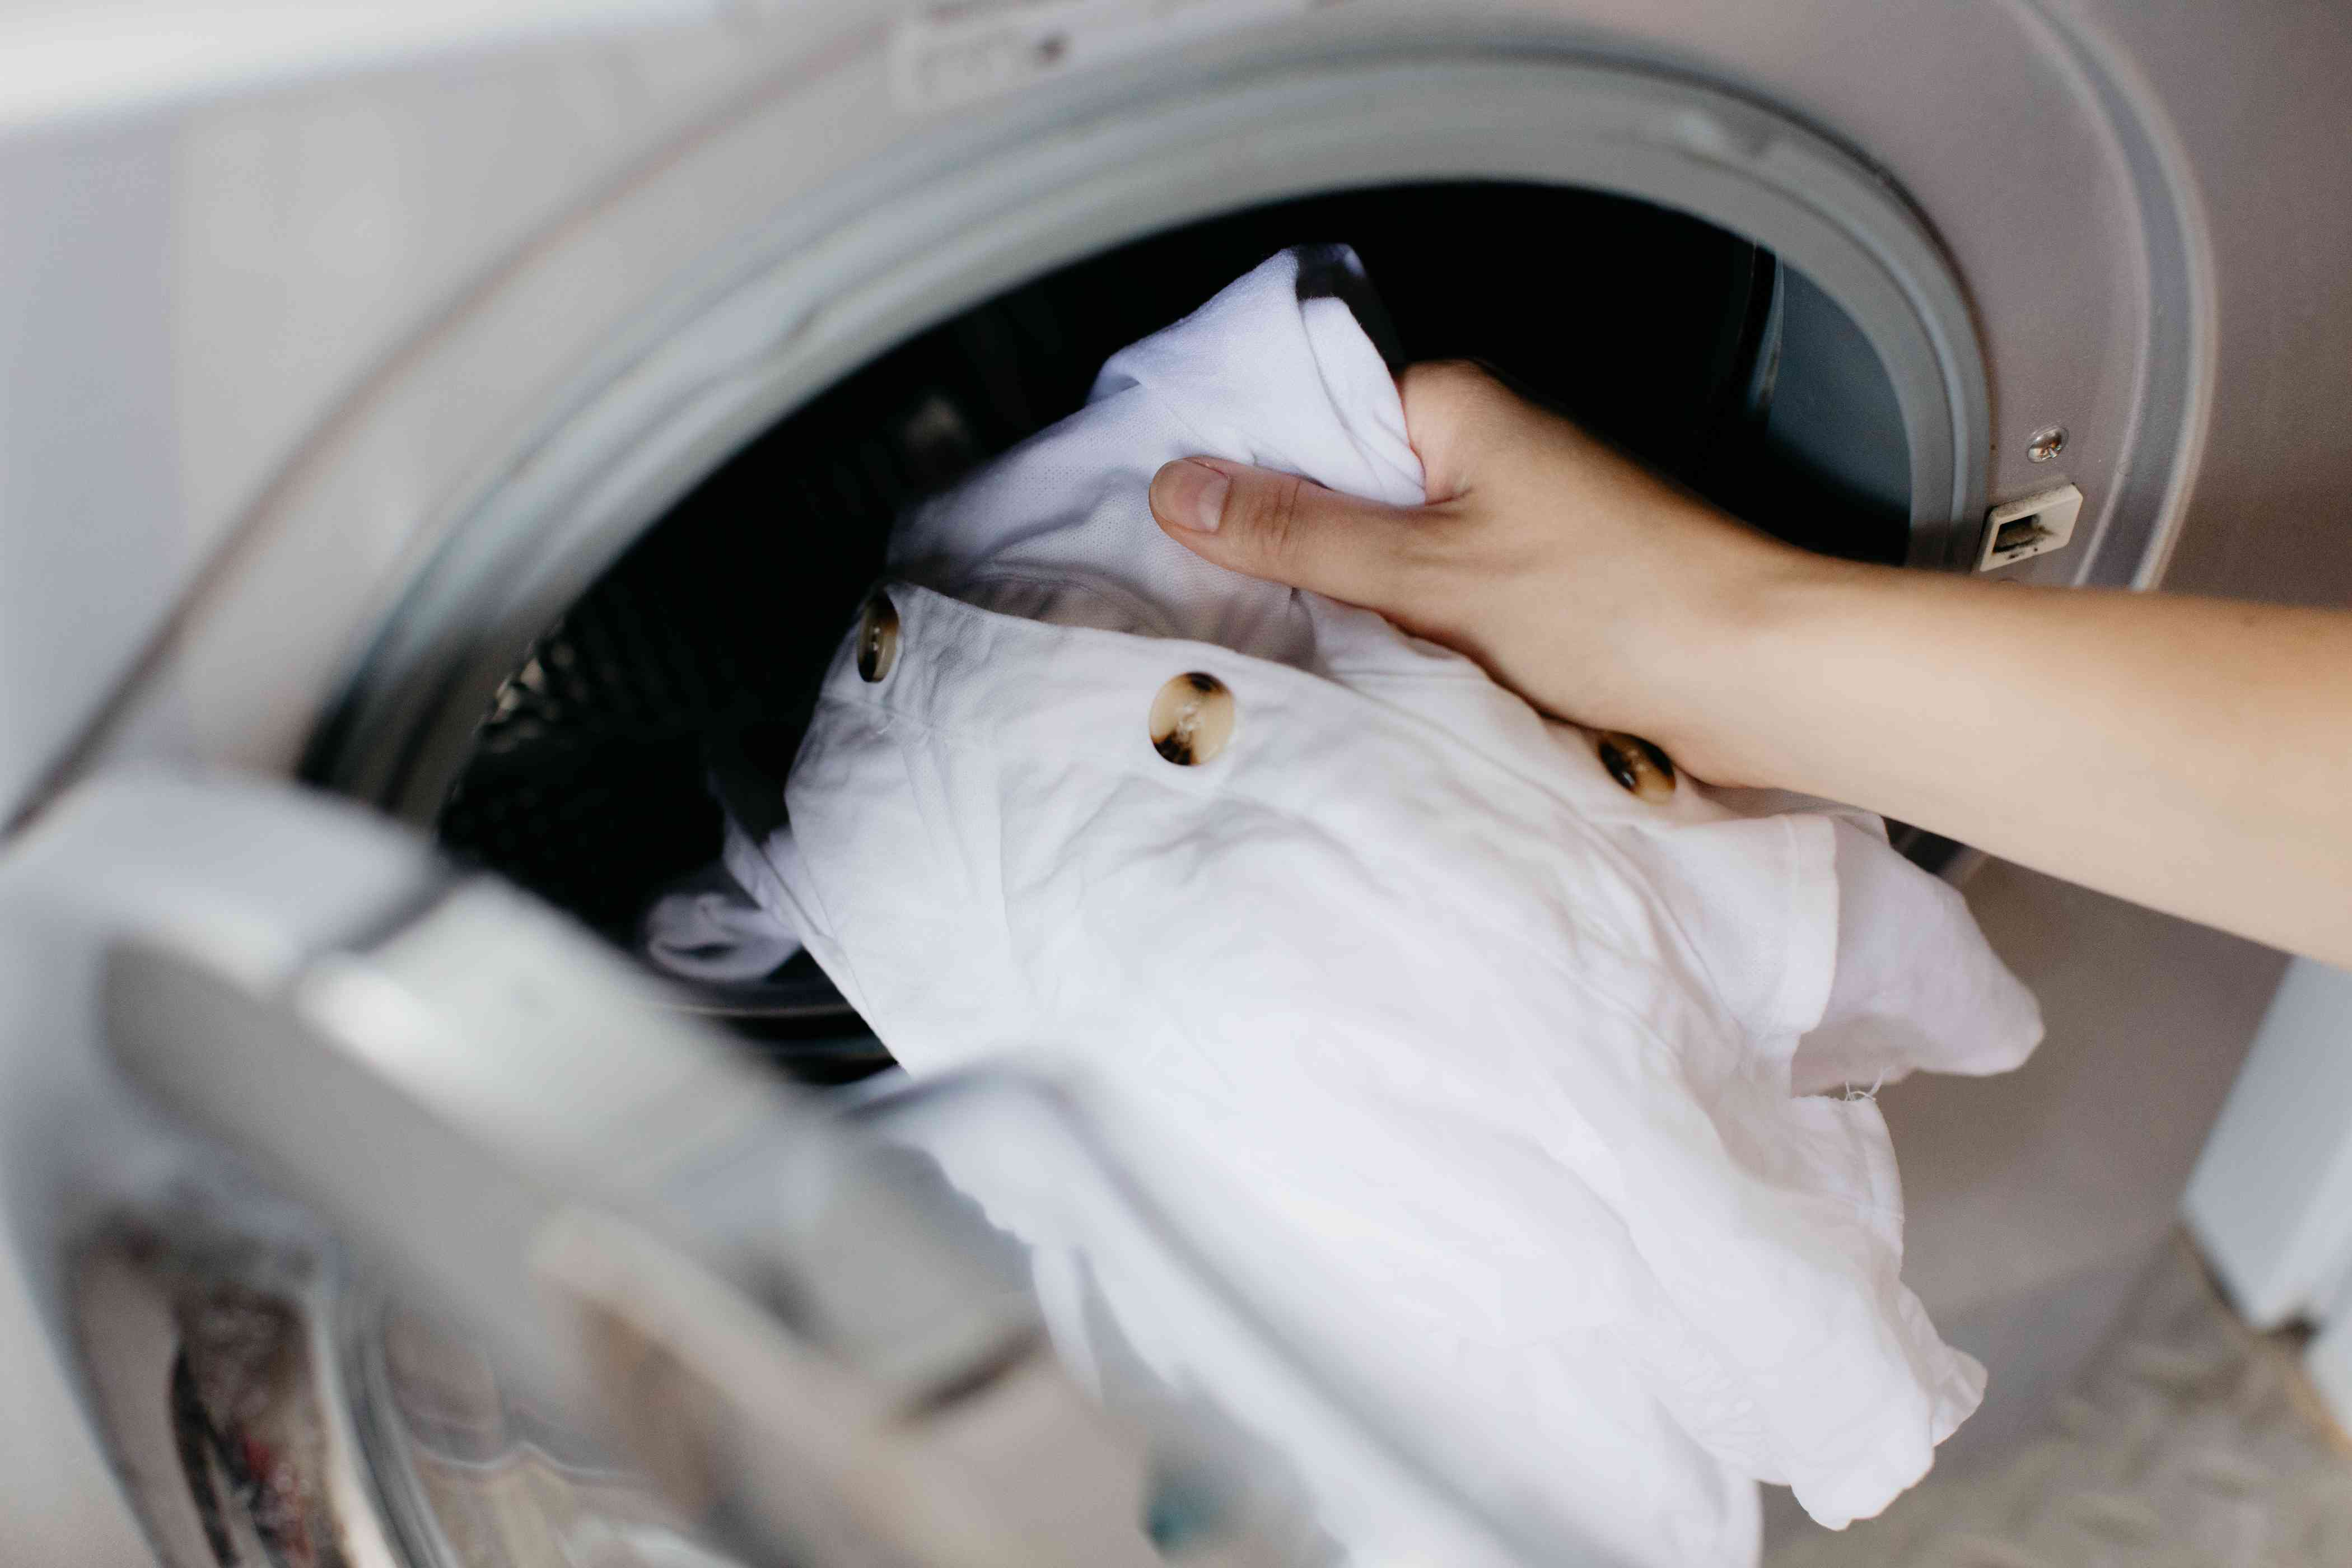 washing the garment per the care tag instructions